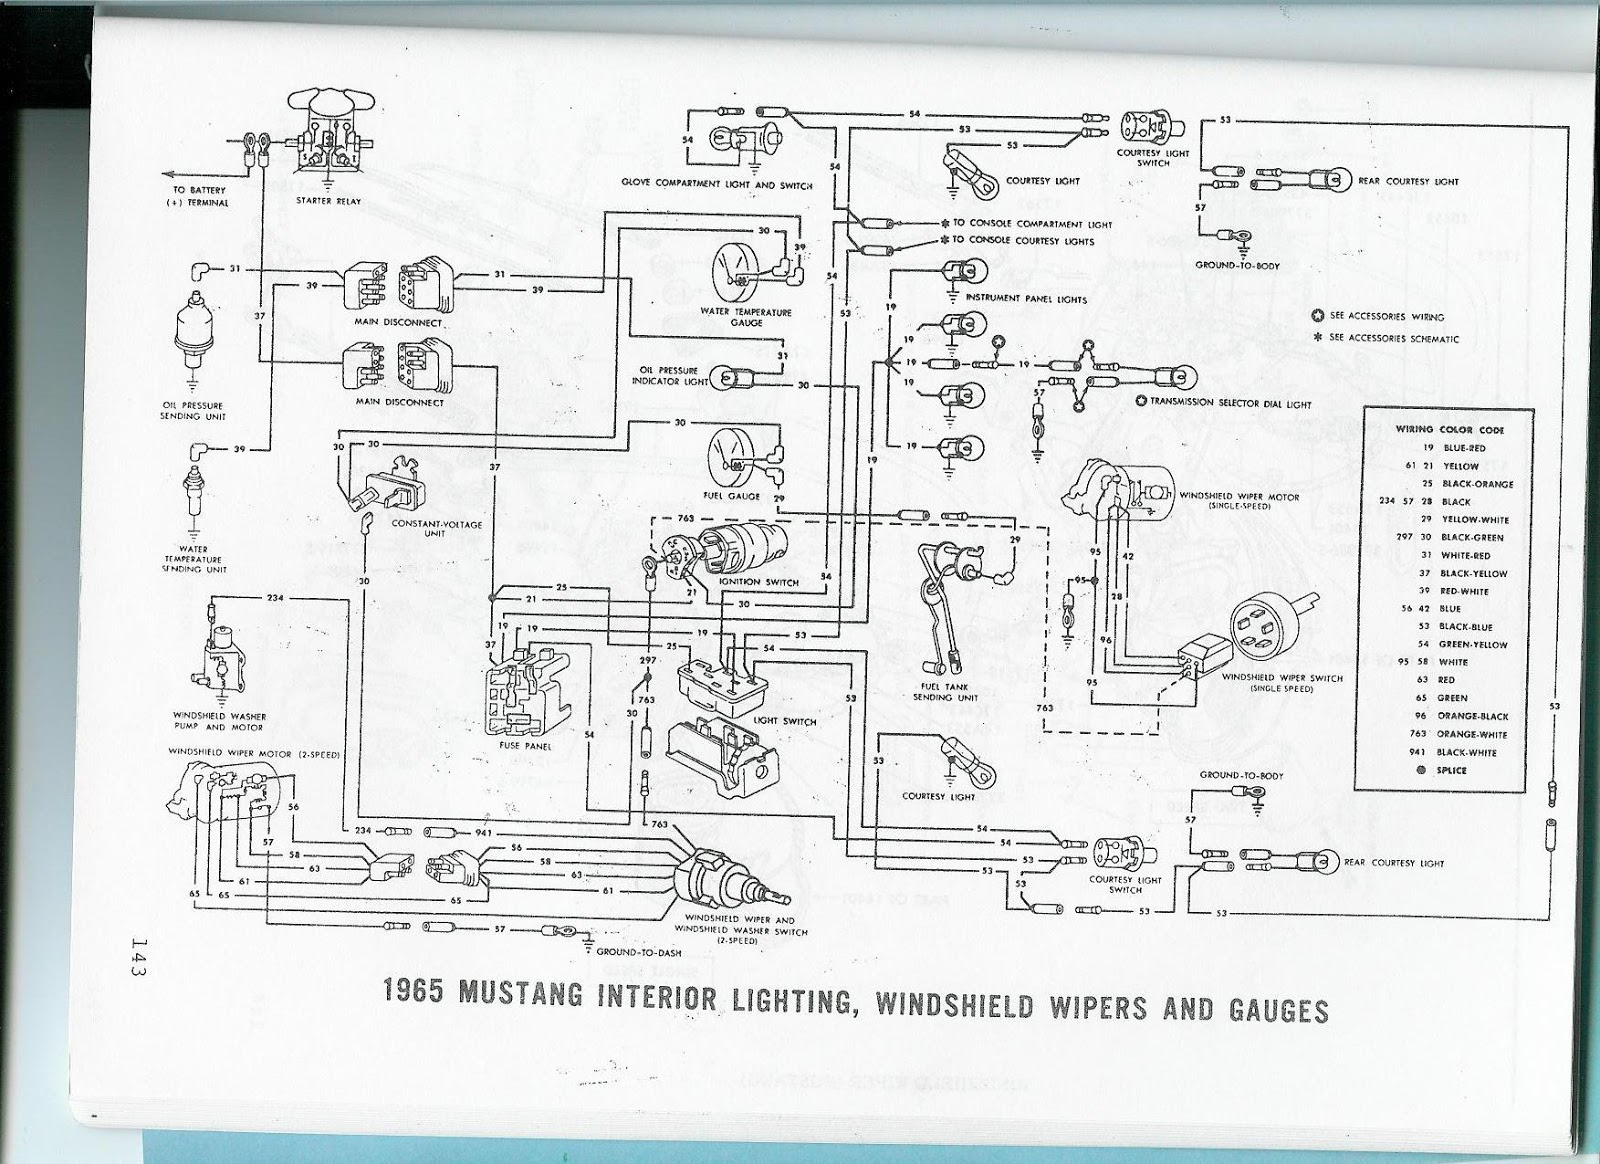 1970 Pontiac Le Mans Wiring Schematic Wire Data Schema Lemans Diagram 1965 Trusted Diagrams U2022 Rh Sivamuni Com Tempest 1971 Sport